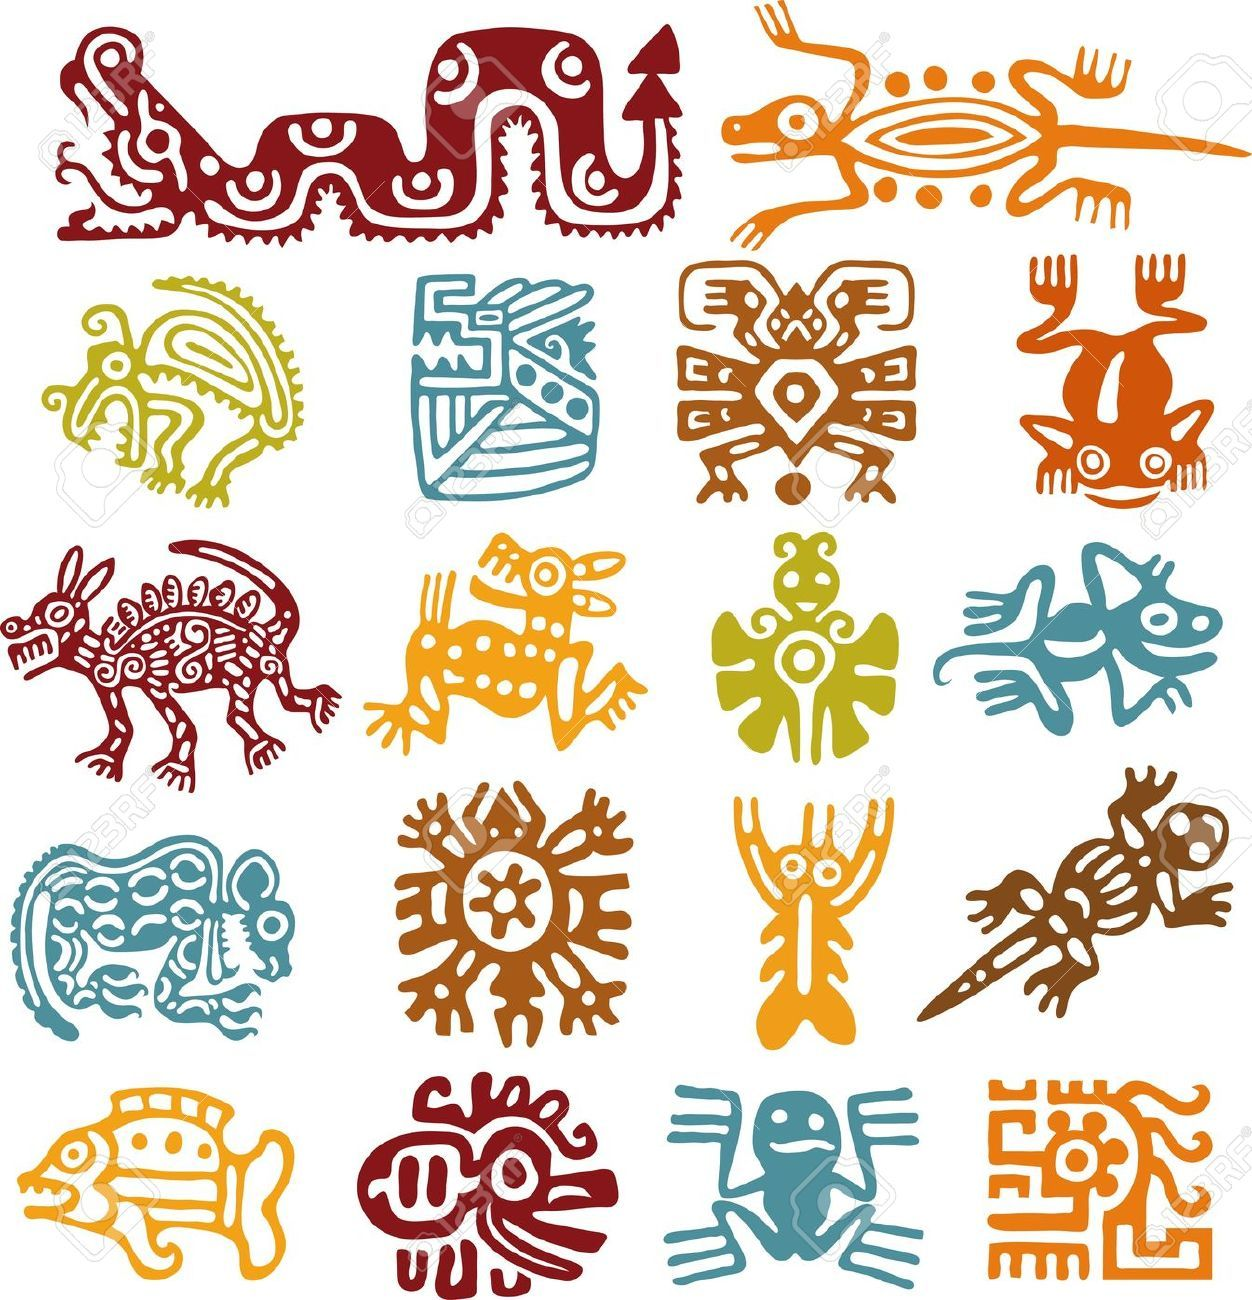 Libros Eroticos Antiguos Aztec Art Cliparts Stock Vector And Royalty Free Aztec